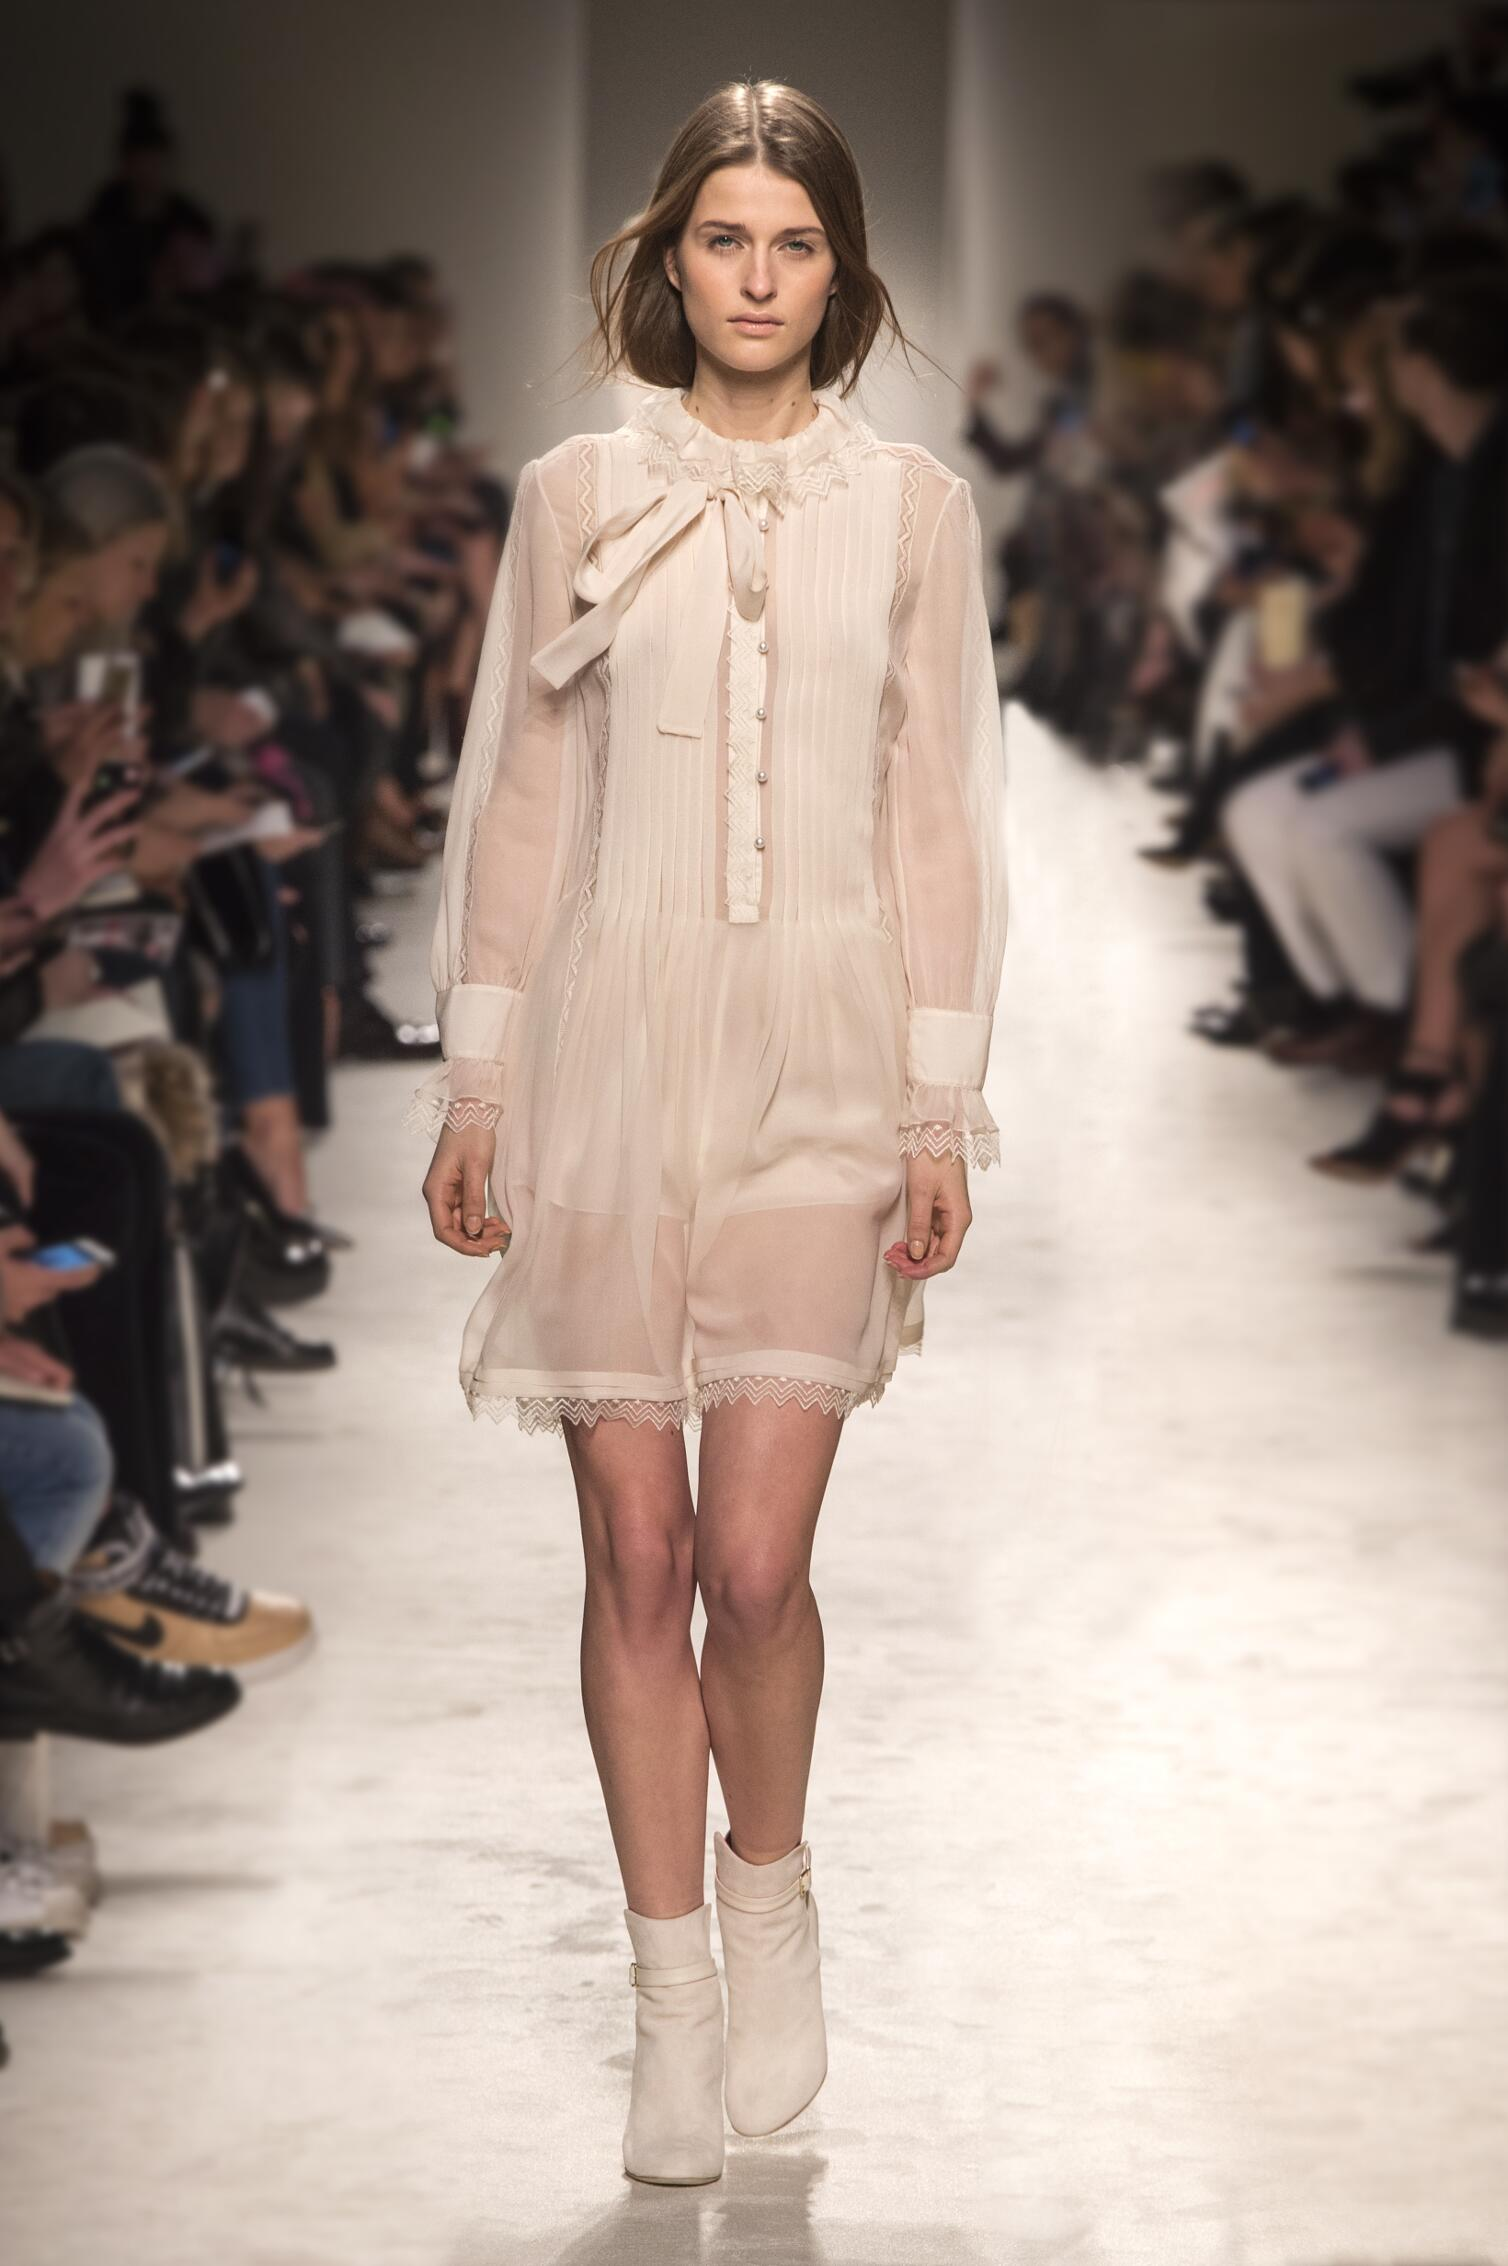 ffbd8966ef3 Winter 2015 Fashion Show Philosophy di Lorenzo Serafini Collection